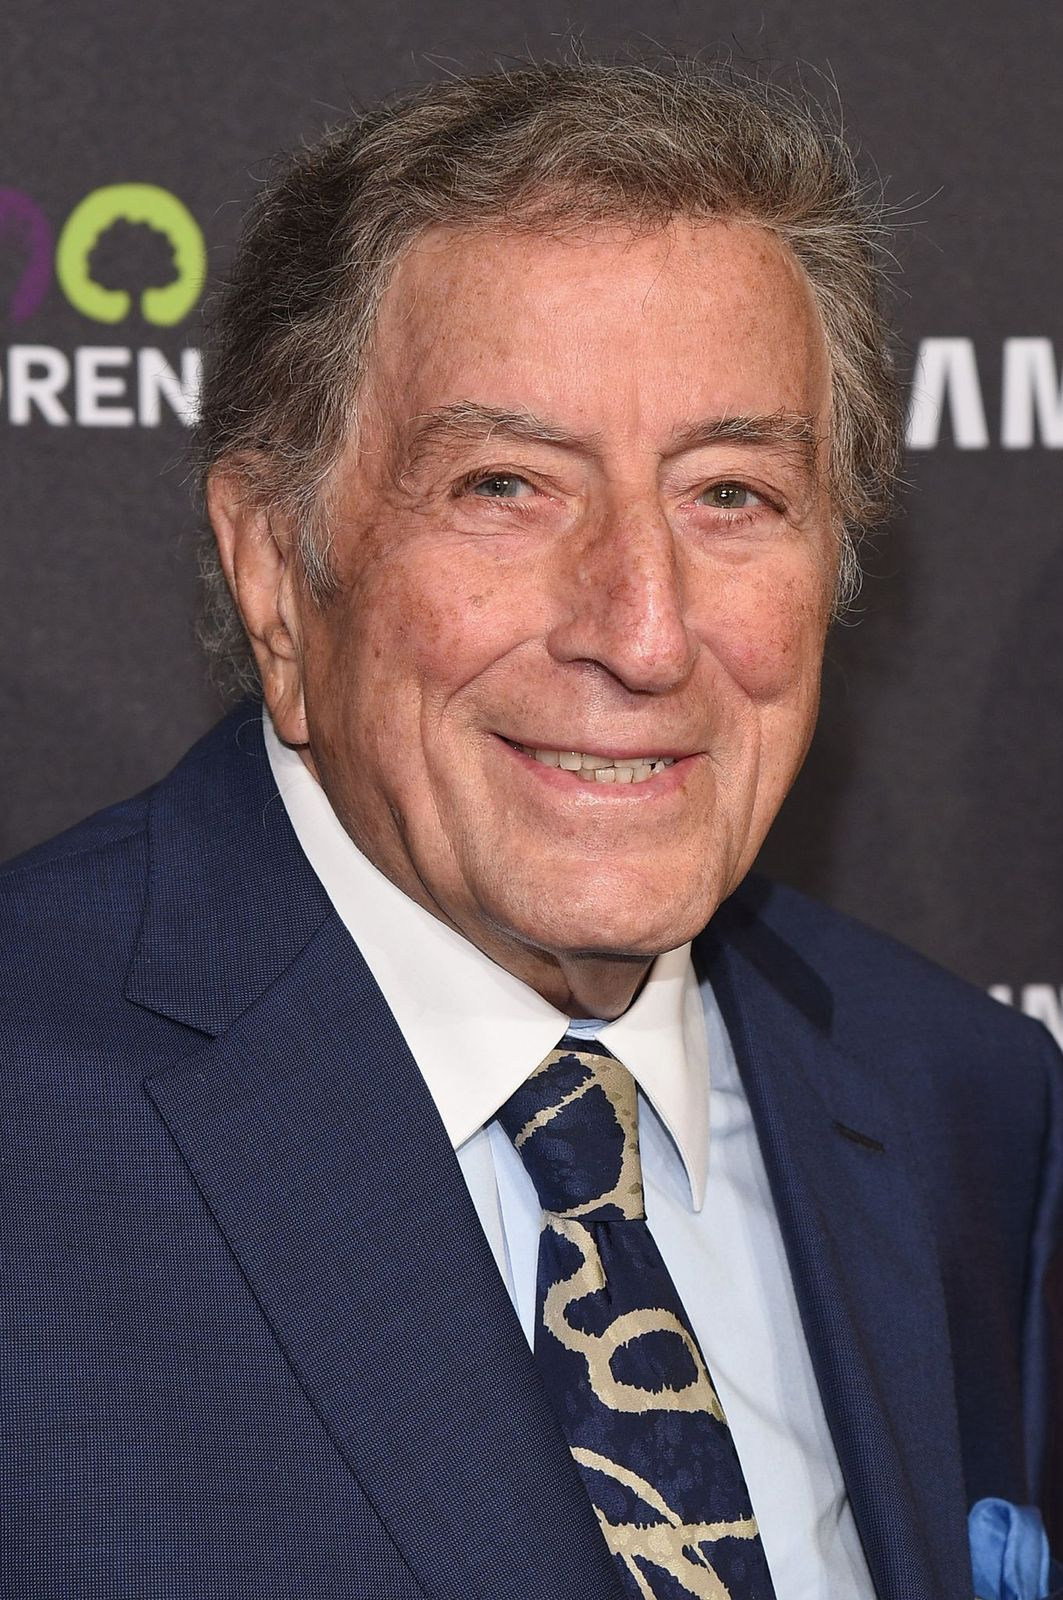 Tony Bennett at the Samsung Hope for Children Gala at the Hammerstein Ballroom on September 17, 2015, in New York City | Photo: Bryan Bedder/Getty Images